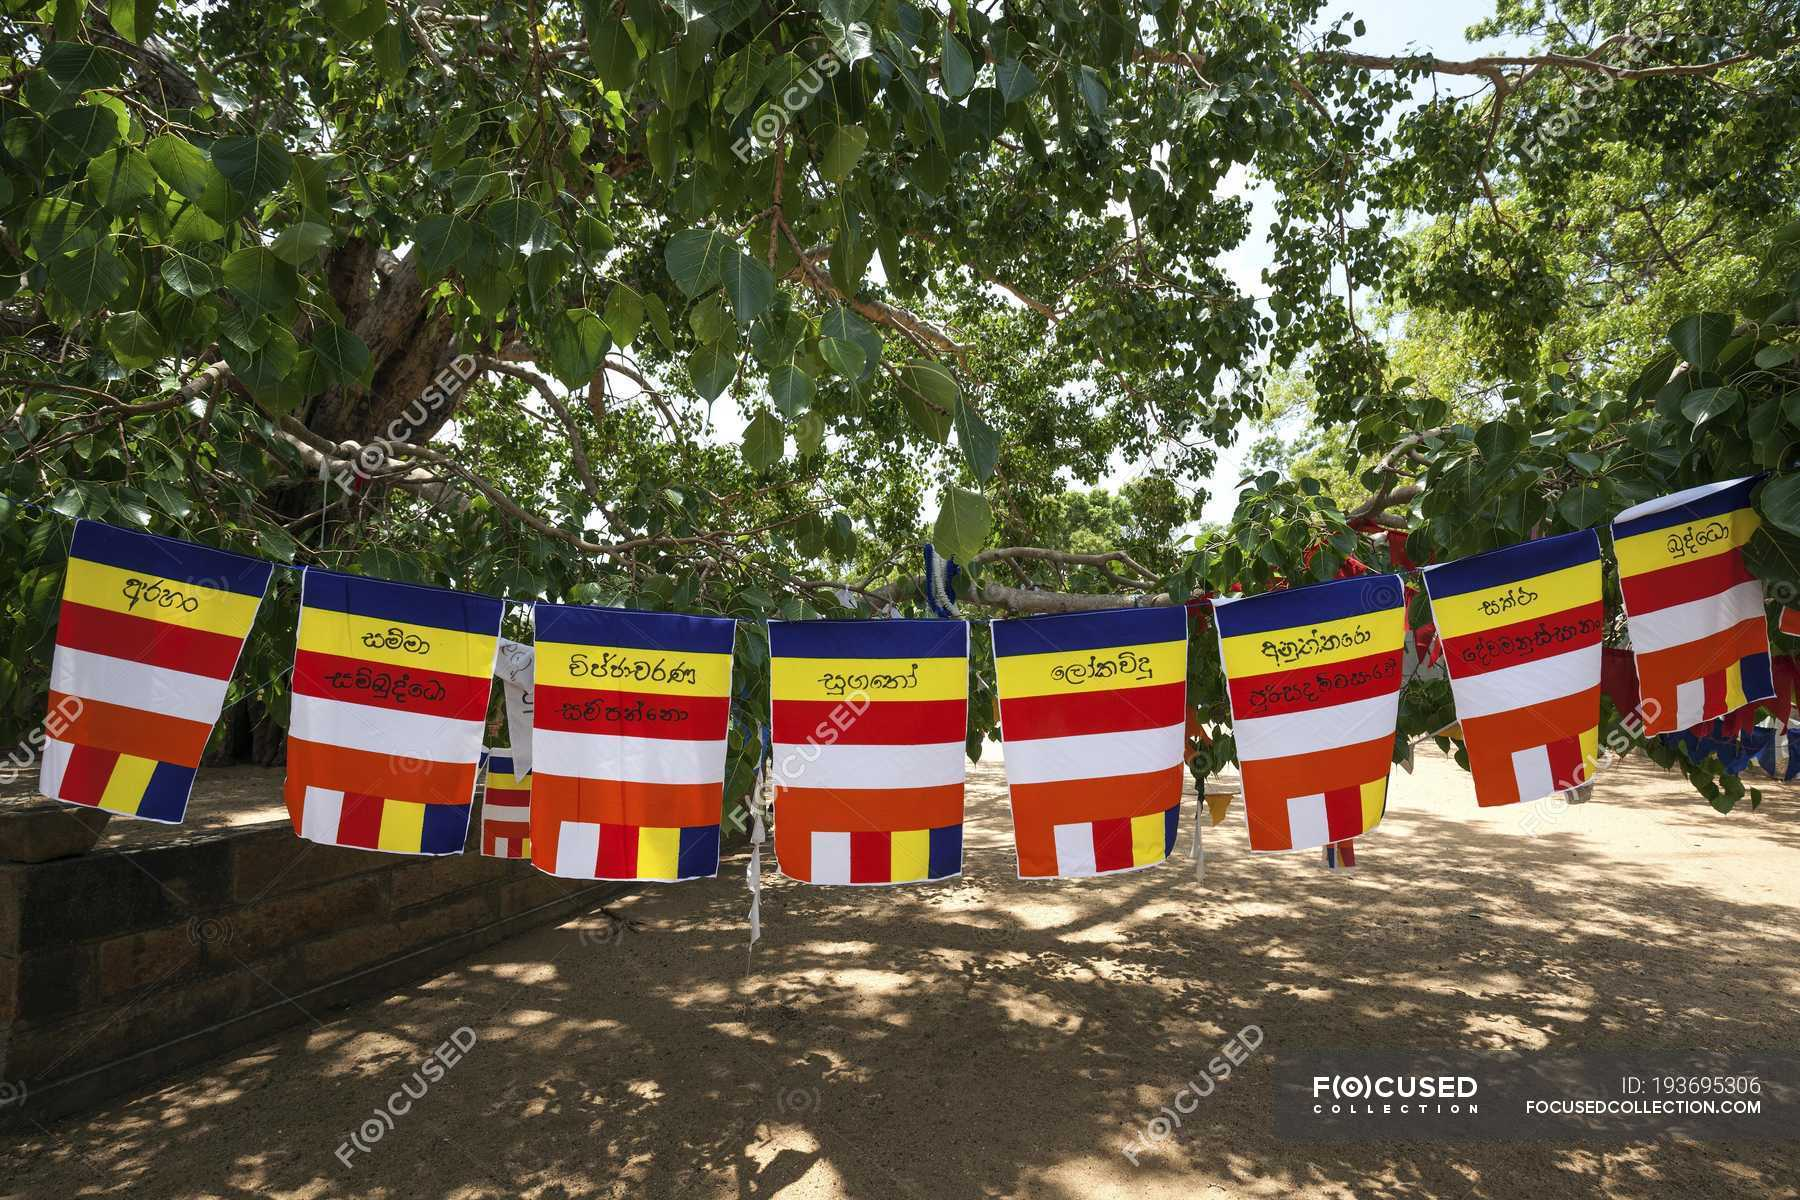 https://st.focusedcollection.com/13064652/i/1800/focused_193695306-International-buddhist-flags-hanging-sacred.jpg